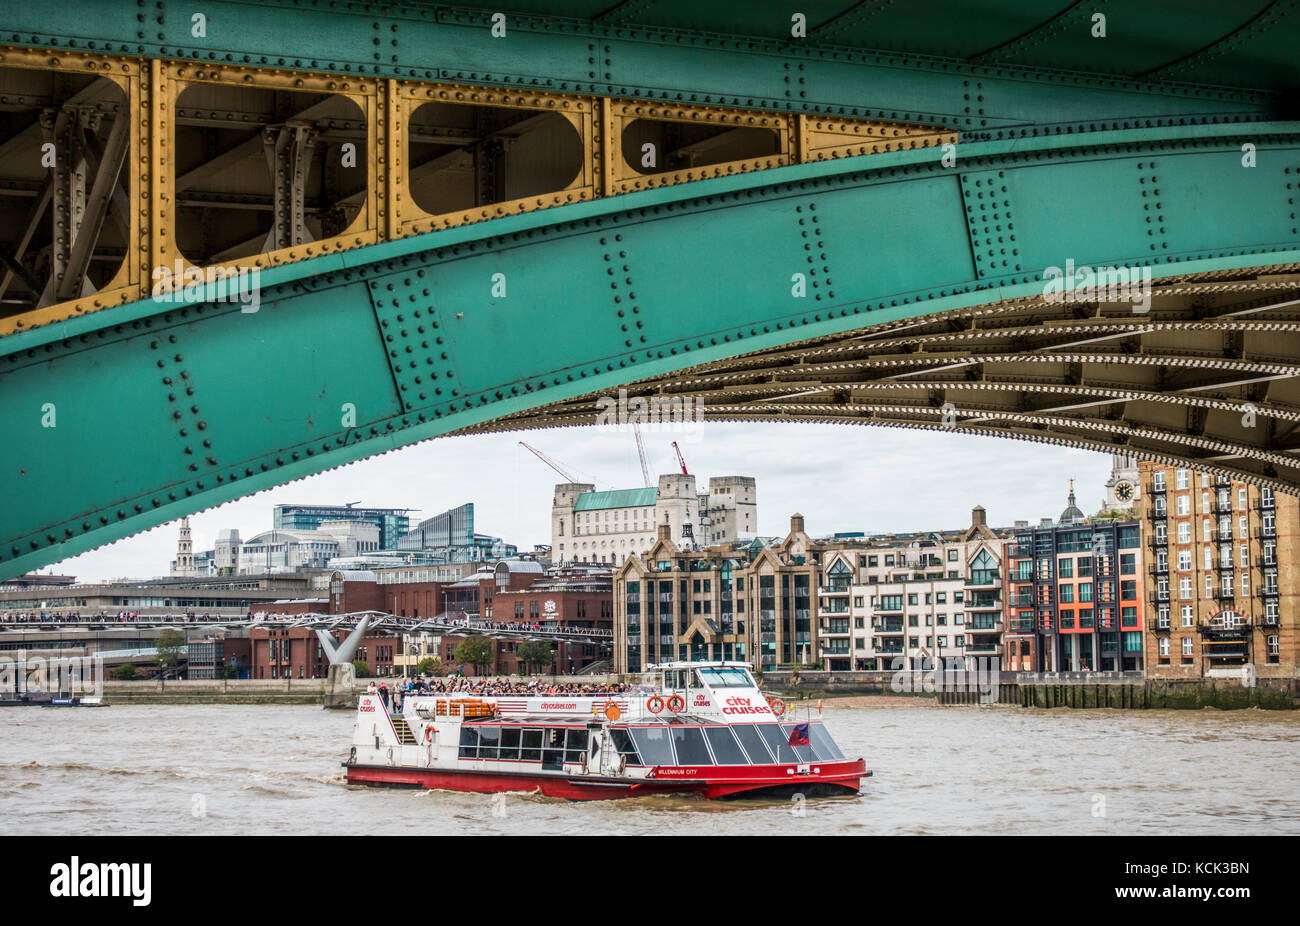 Arched section of Southwark Bridge on Bankside, with a busy cruise boat passing on the River Thames and riverside - Stock Image